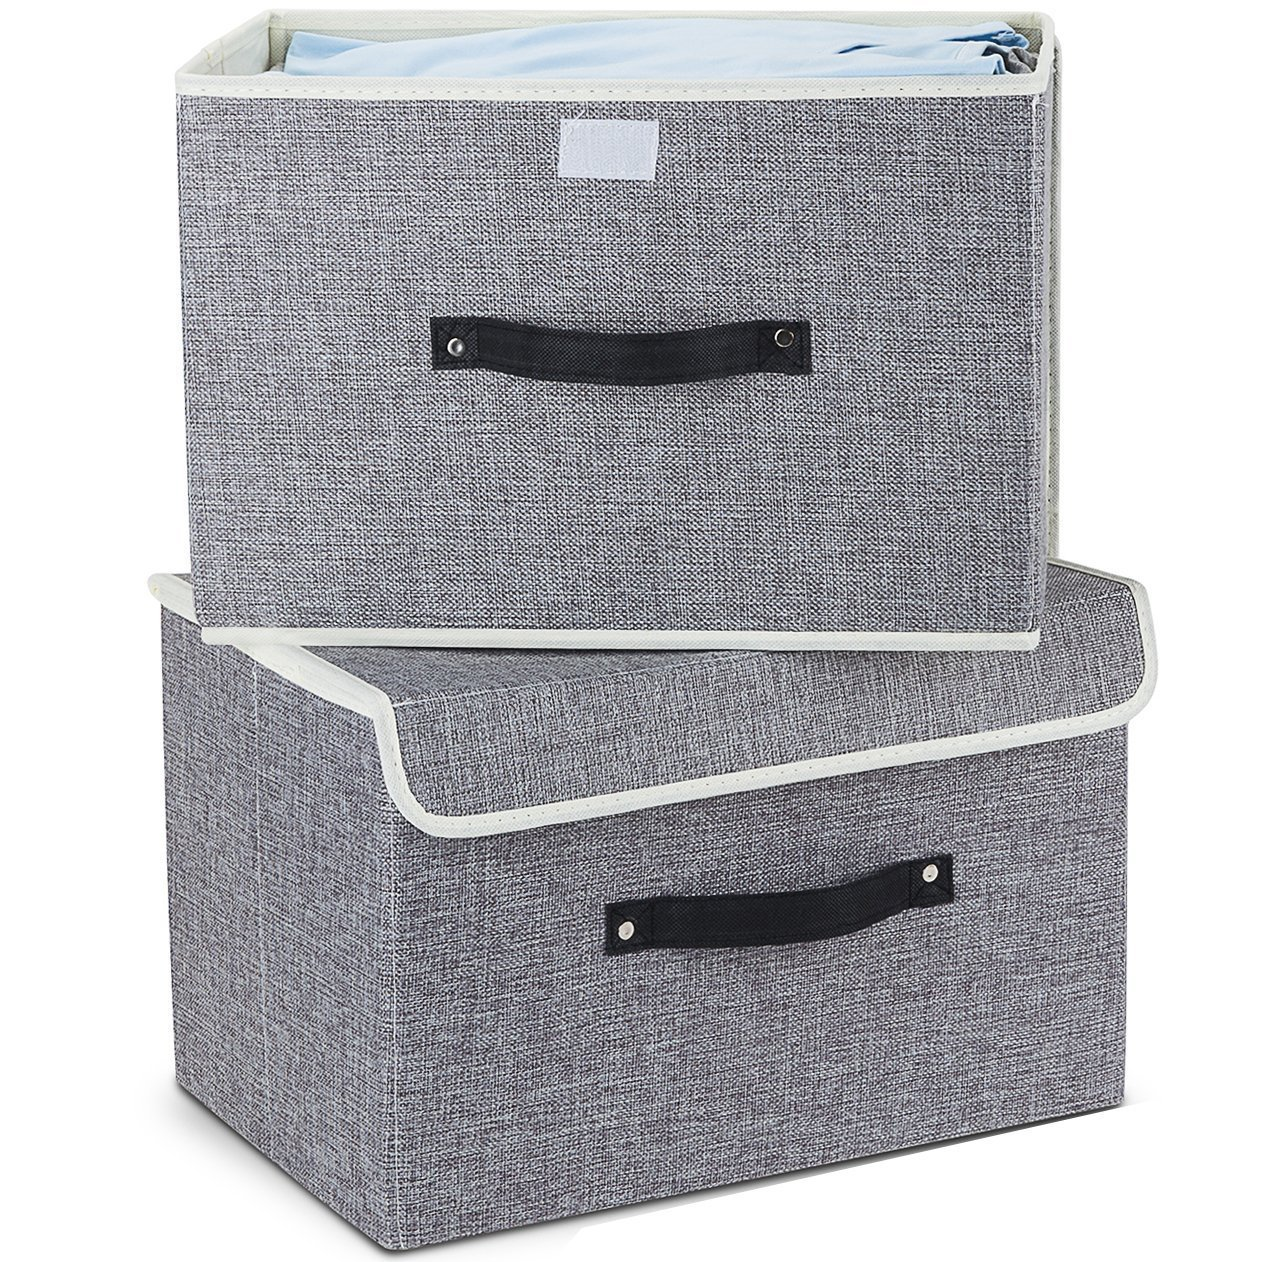 EZ GENERATION Storage Bins Set, Storage Baskets Pack of 2 Foldable Storage Boxes Cubes with Lids, Fabric Storage Bin Organizer Collapsible Box Containers for Nursery,Closet,Bedroom,Home(Light Gray) by EZ GENERATION